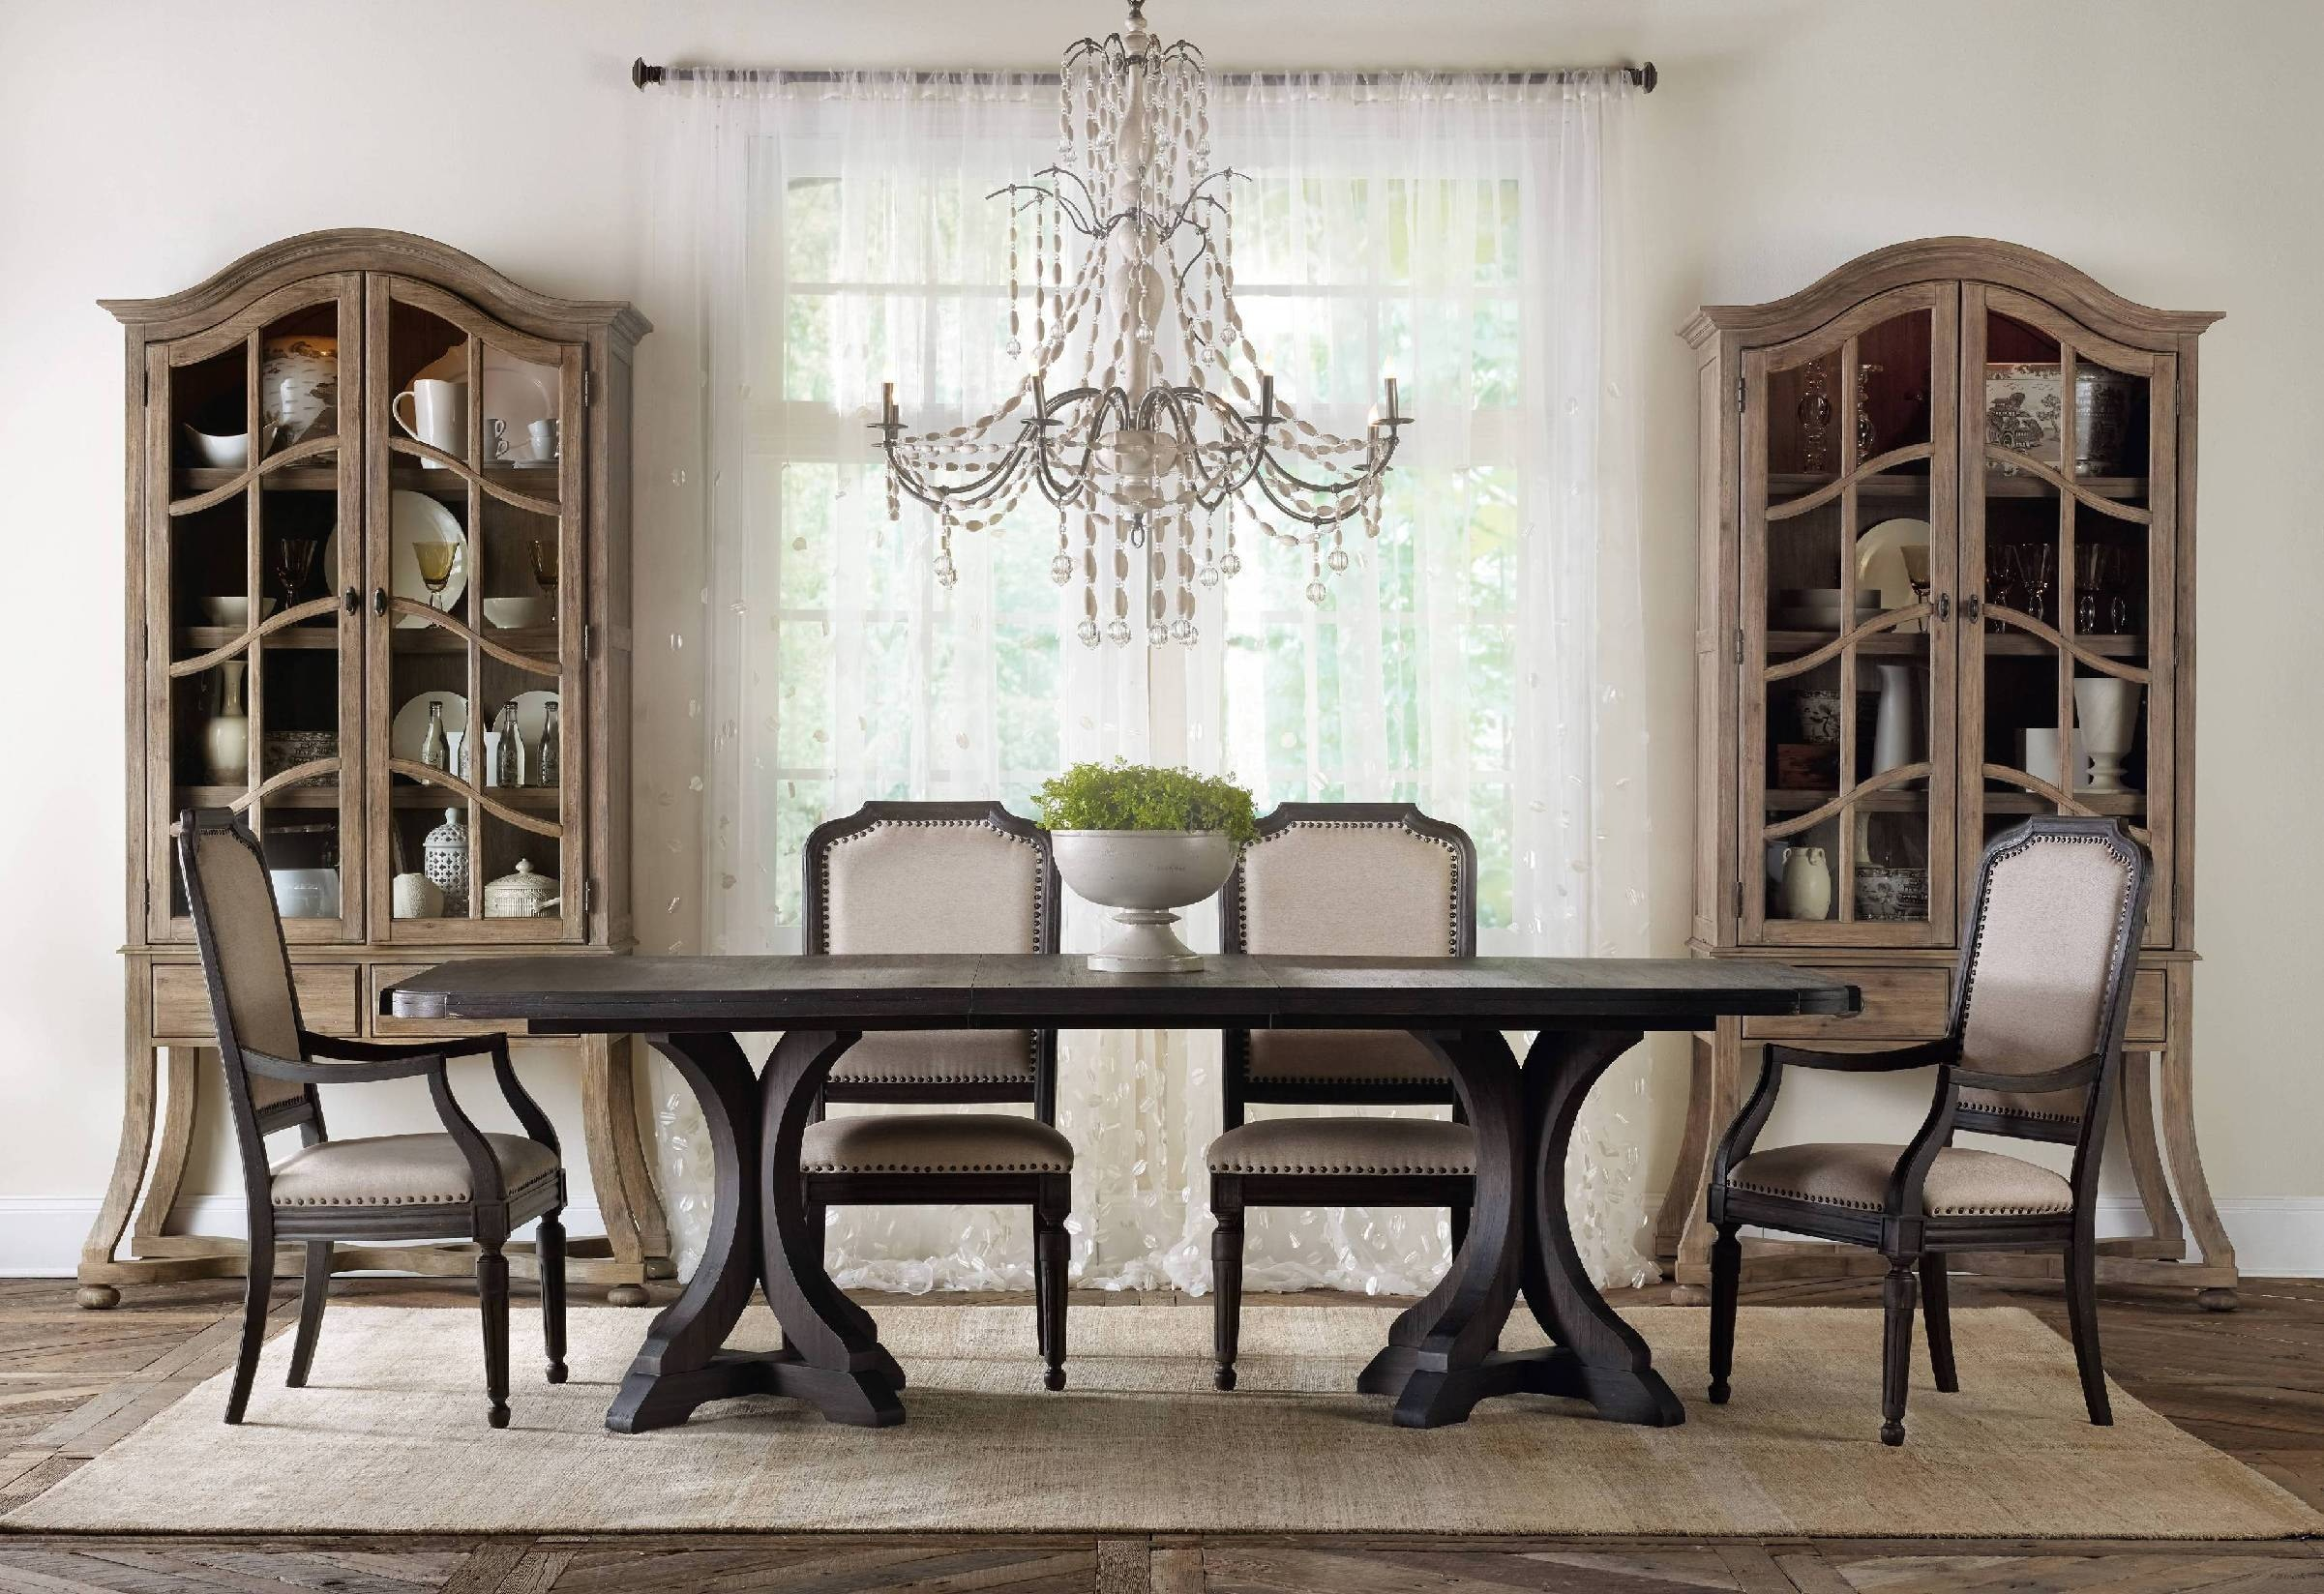 Hooker Furniture Corsica Dark Rectangle Pedestal Dining Table W/2 20in  Leaves 5280